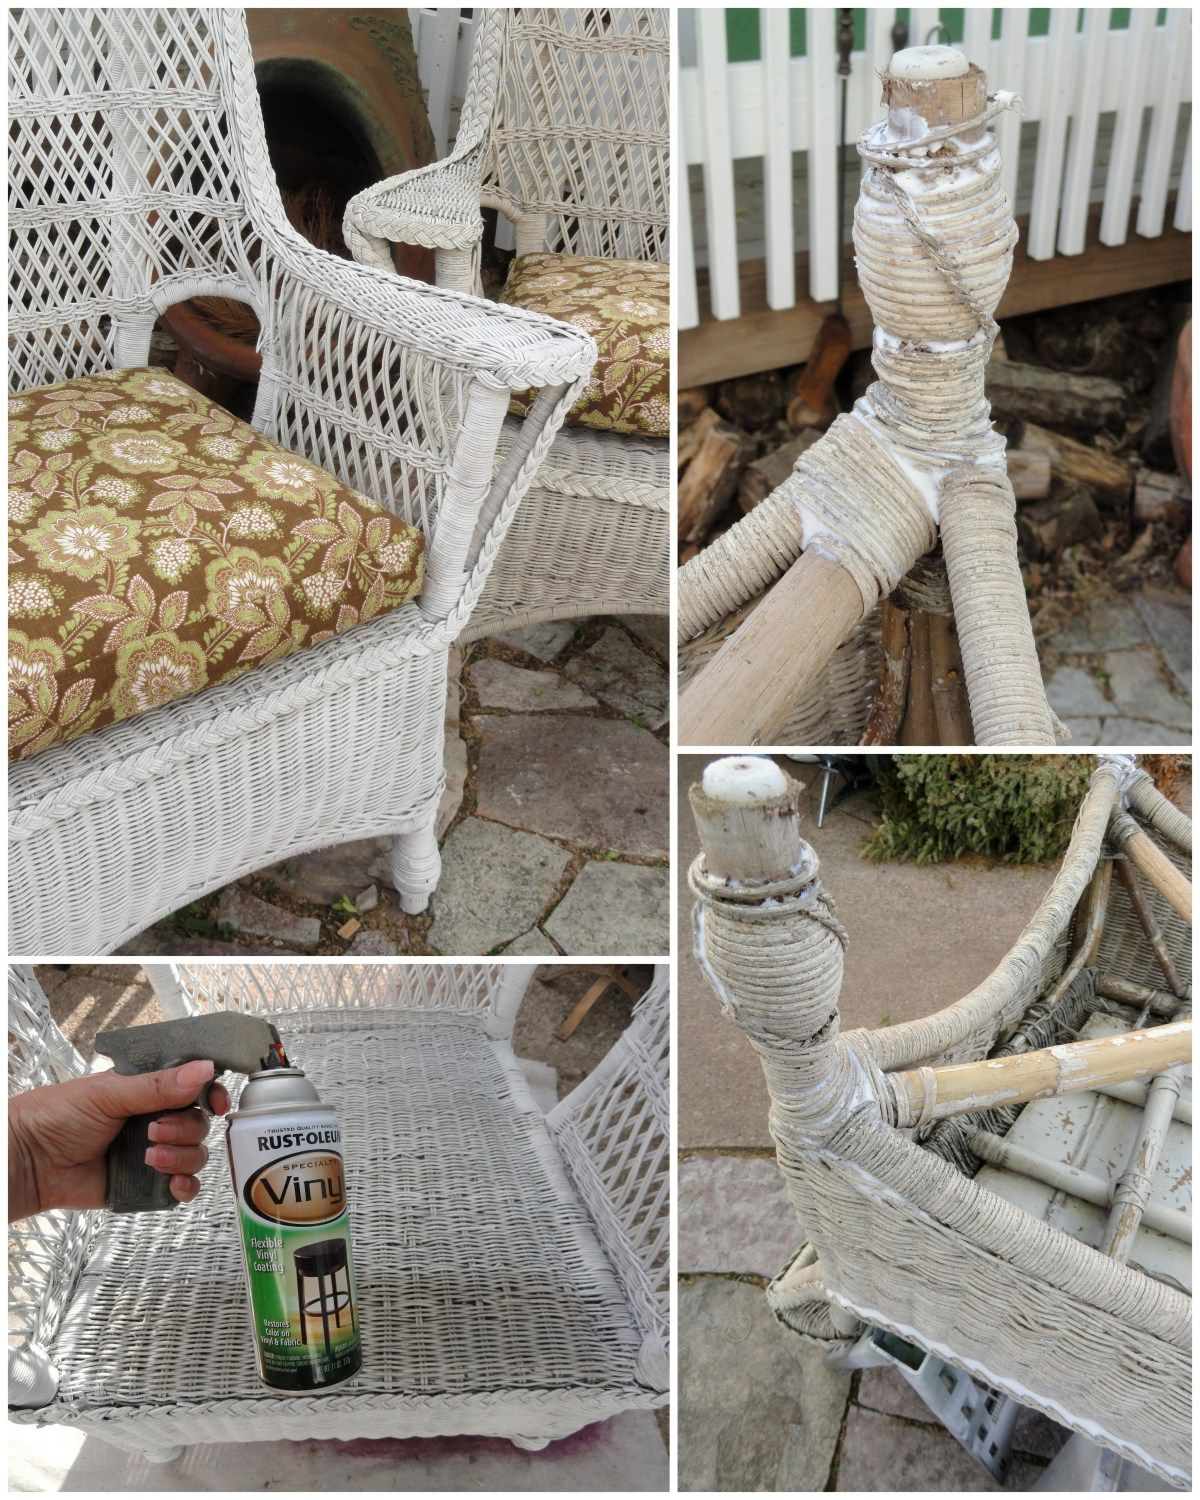 How To Repair Wicker Patio Furniture.My Old Wicker Patio Chairs Crafty Old Wicker Chairs Old Wicker